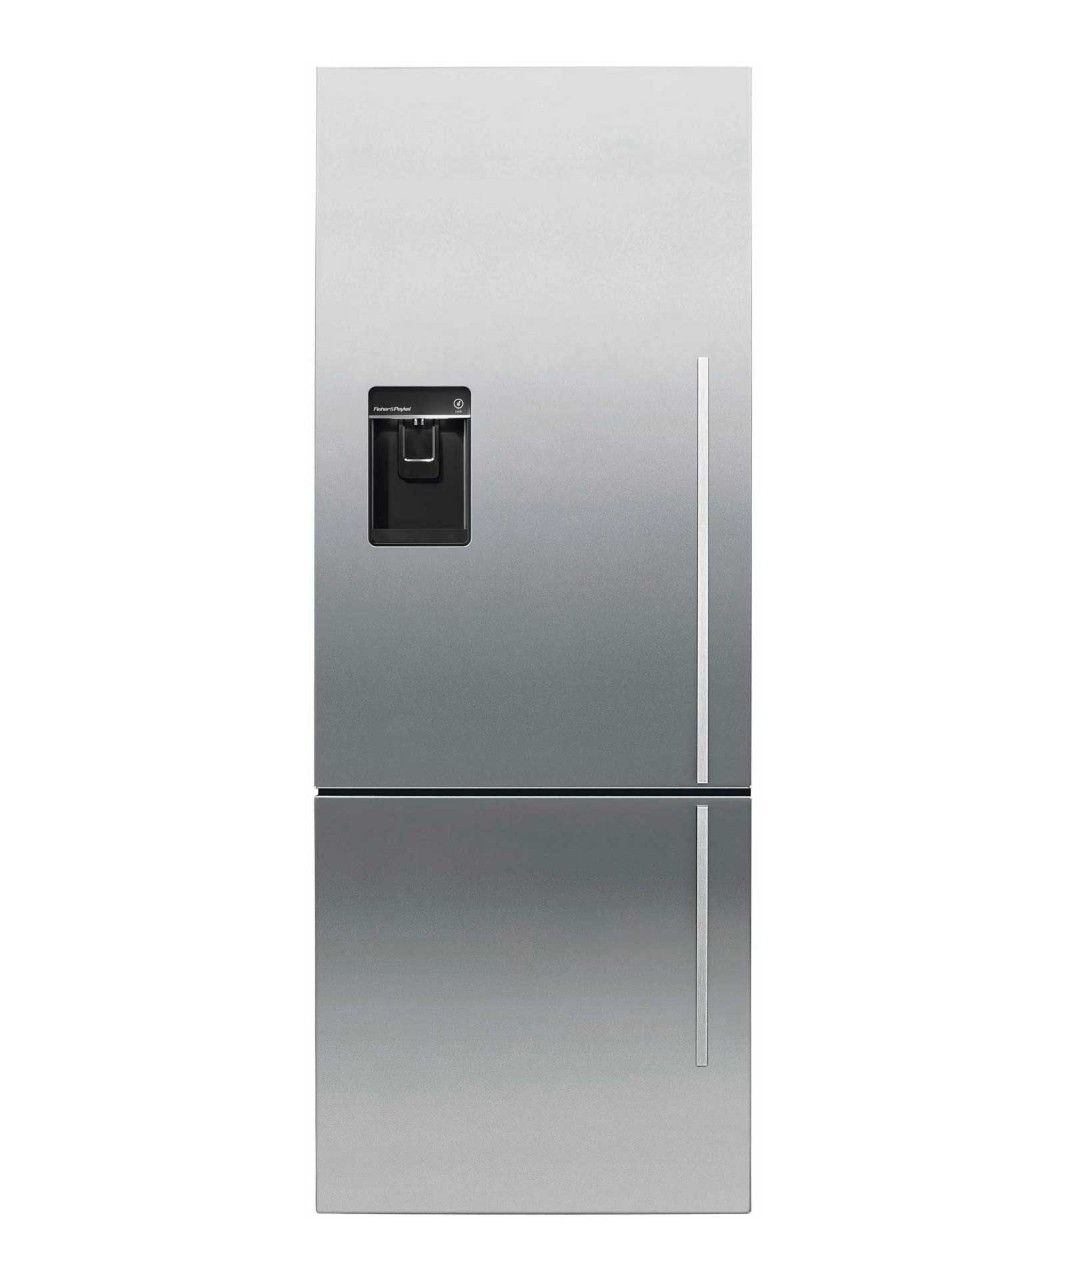 Fisher and Paykel SCRATCH AND DENT---Counter Depth Refrigerator 13.5 cu ft, Ice & Water